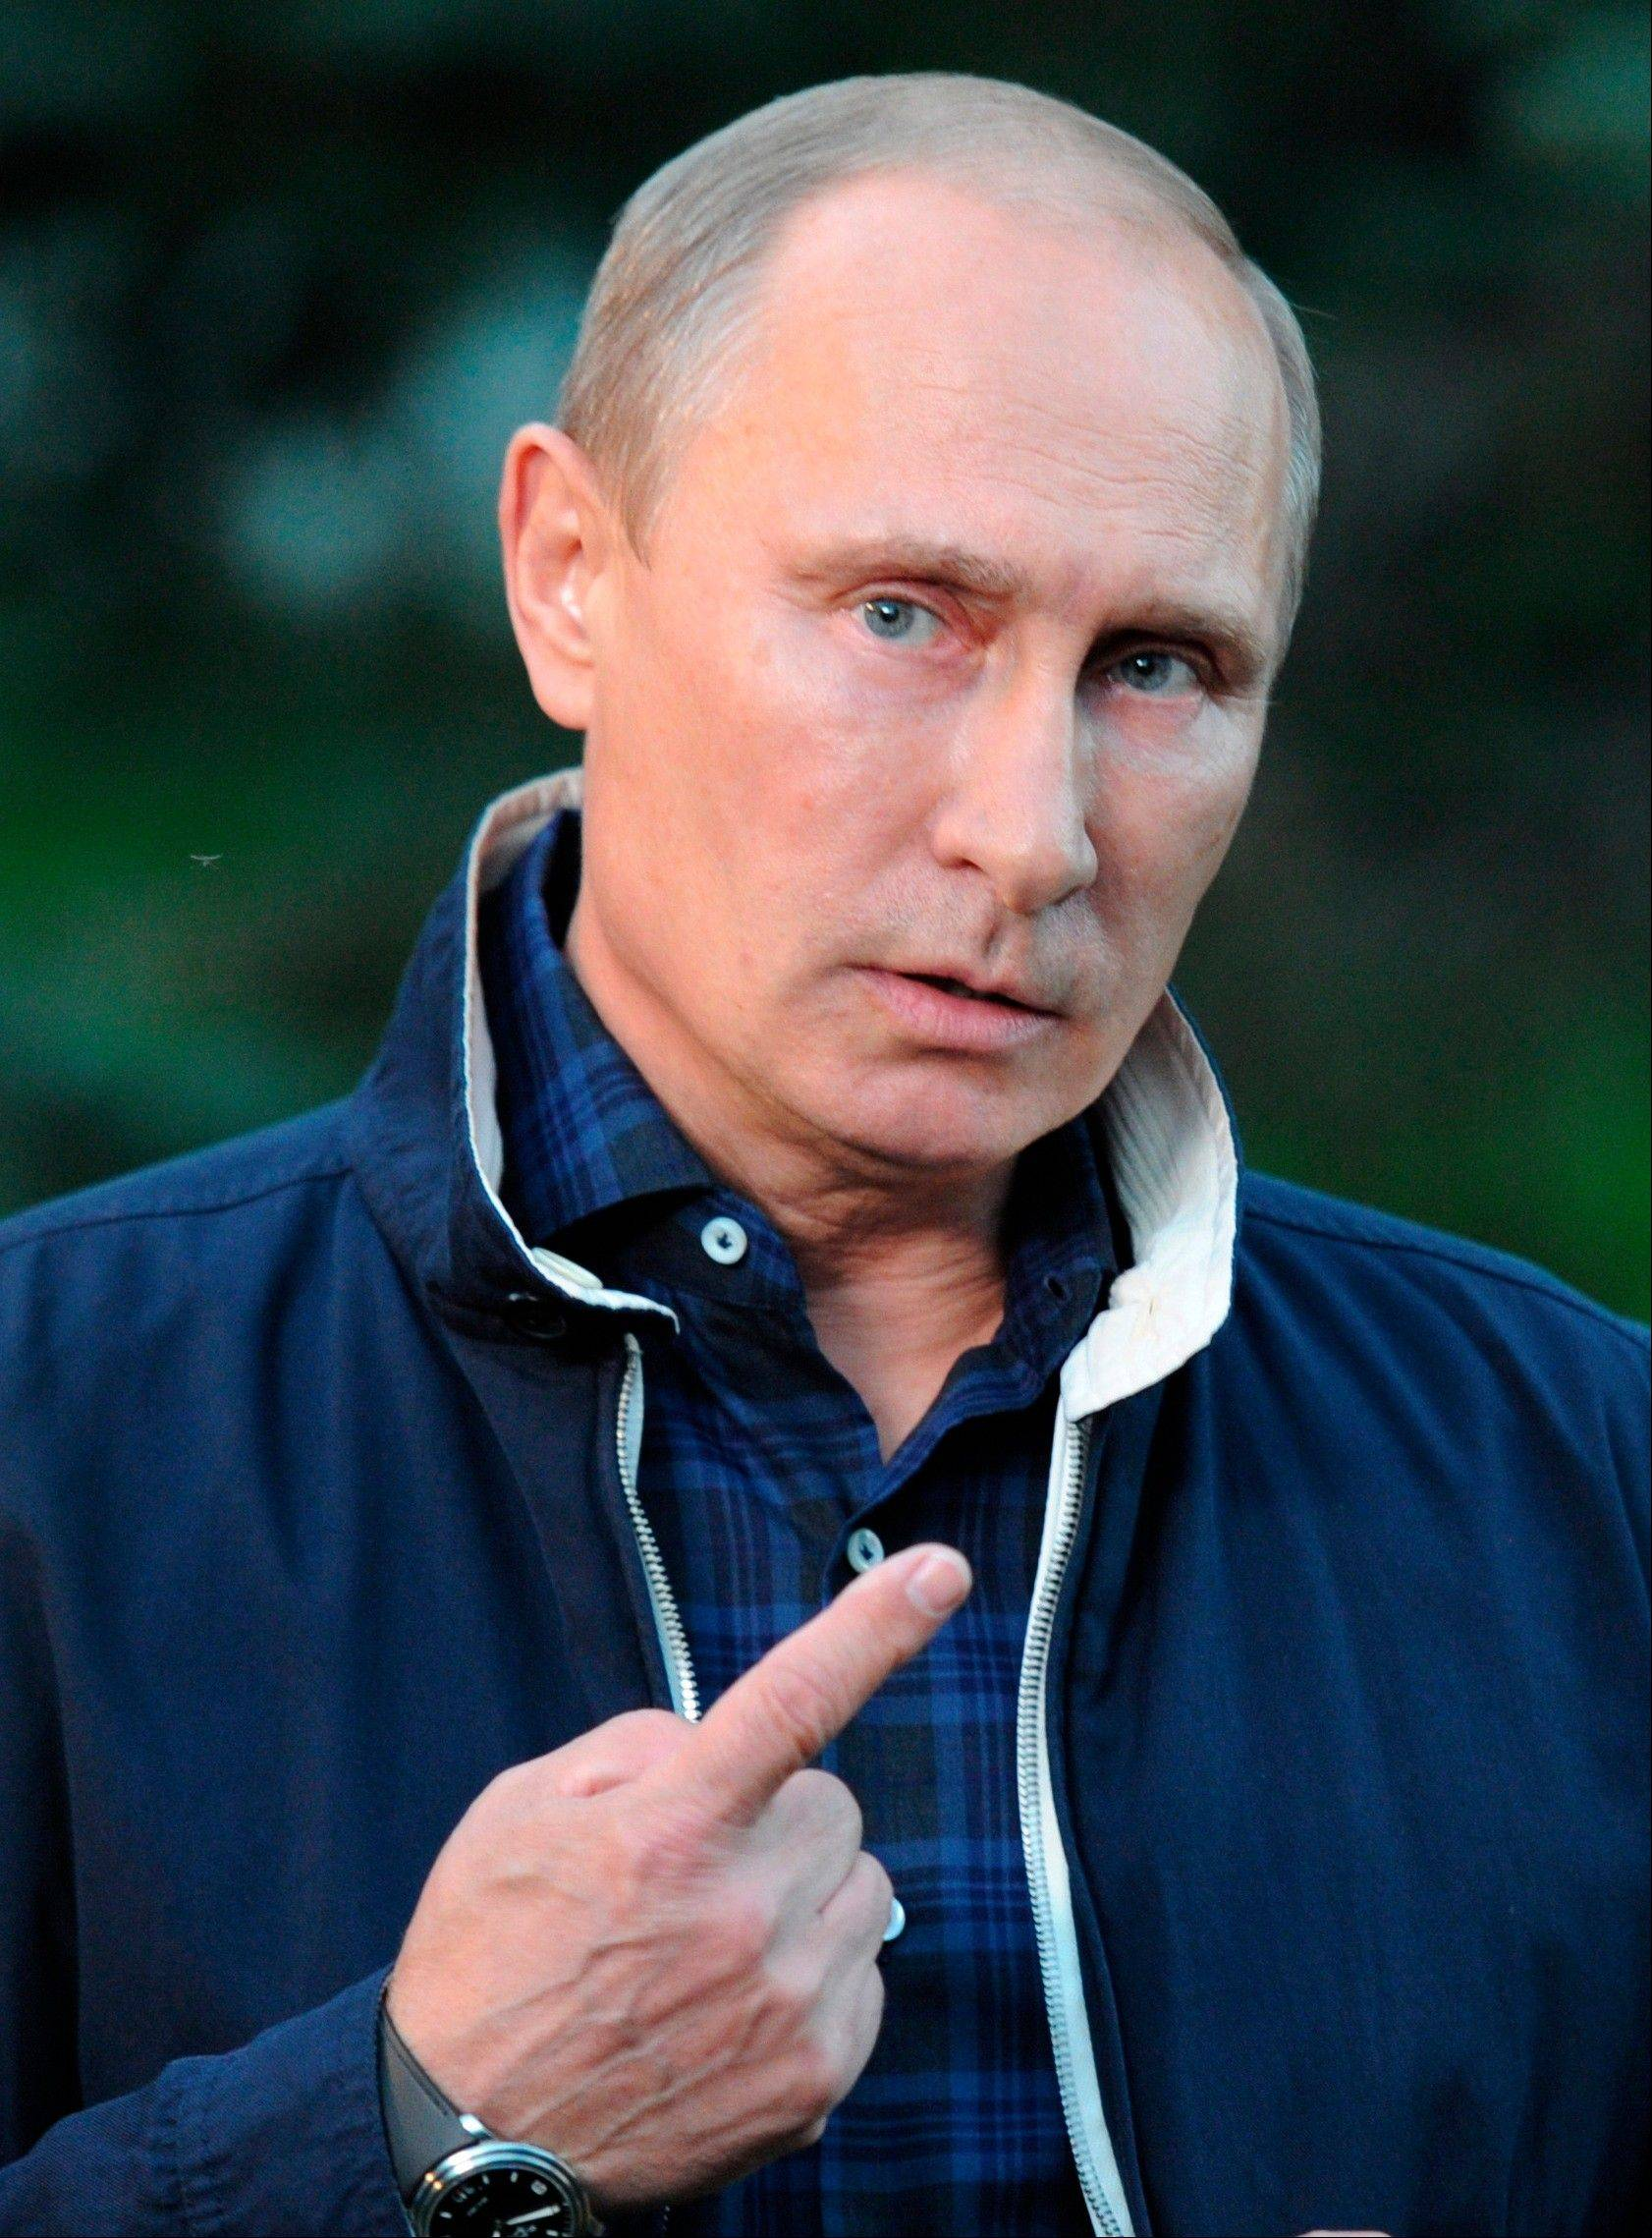 Russian President Vladimir Putin speaks to the media Saturday during his trip to Russia's far eastern port of Vladivostok. Putin urged President Obama not to rush into a decision on striking Syria.